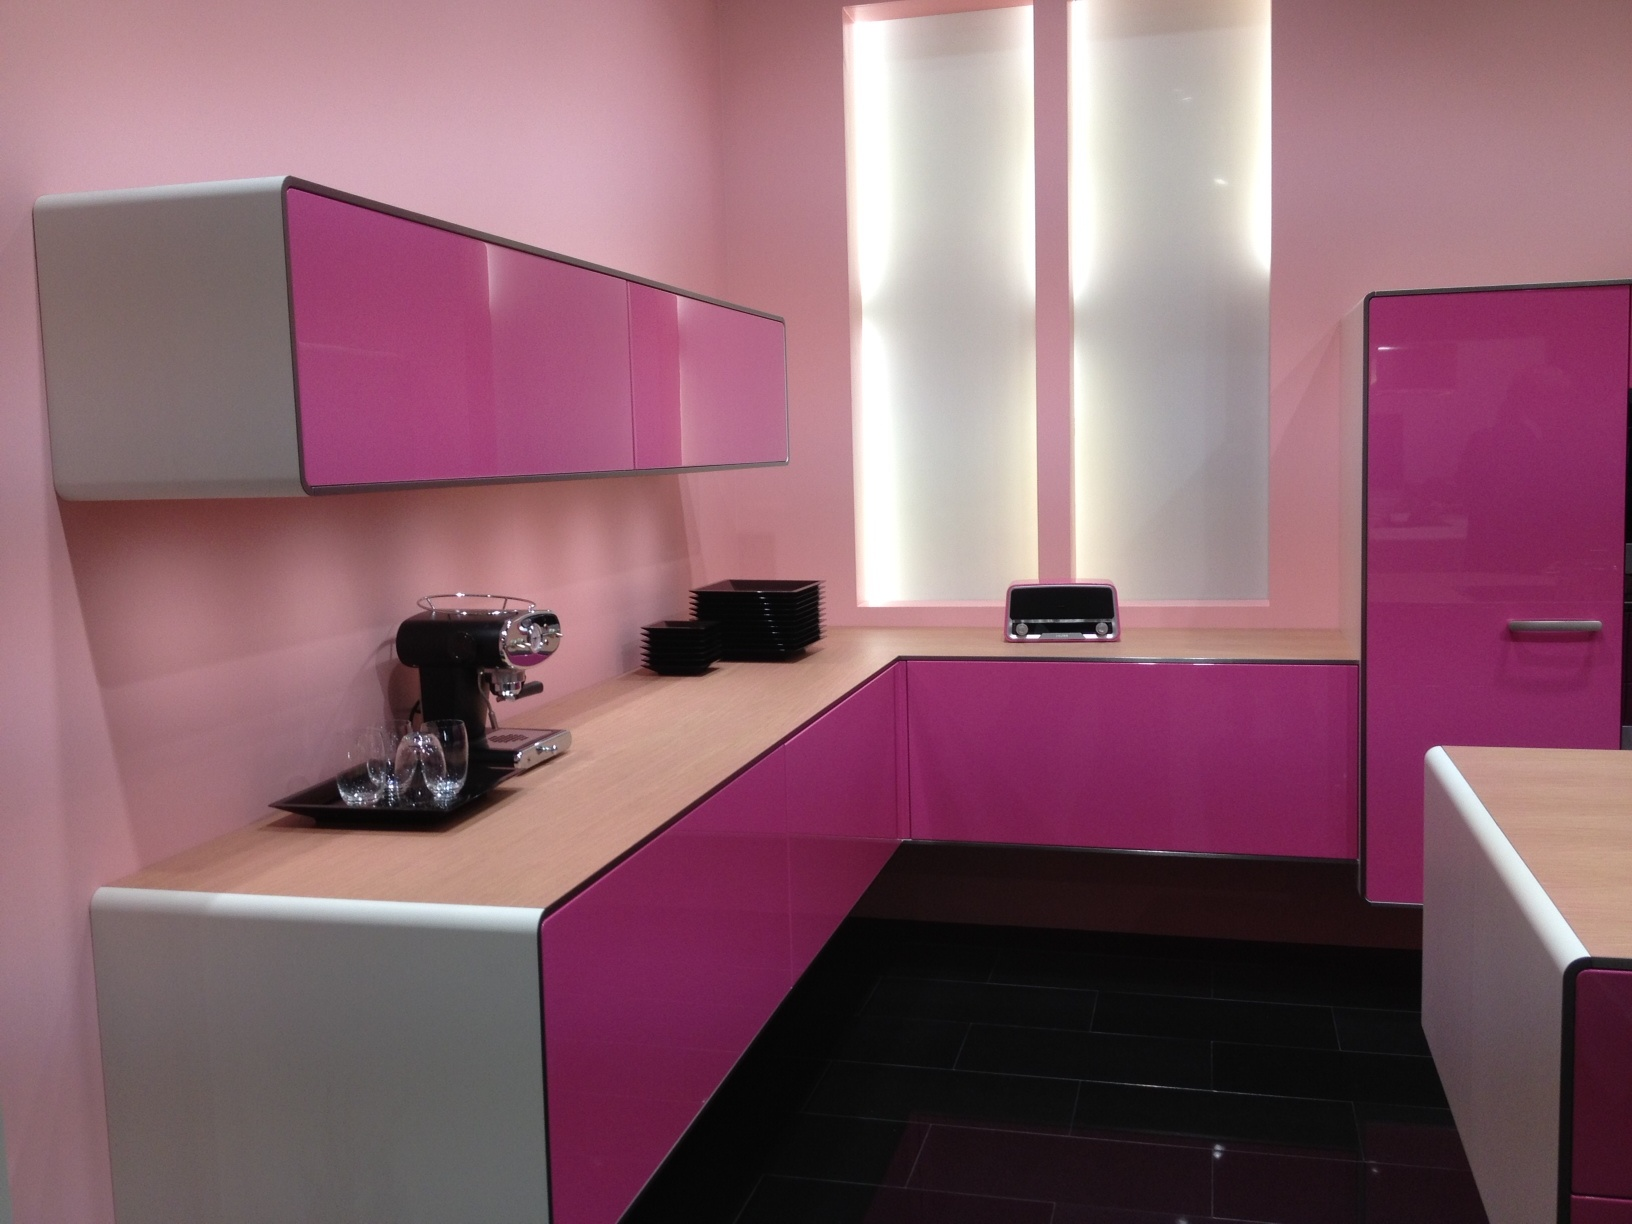 Pink Kitchen Pink Appliances Kitchen Kitchen Ideas